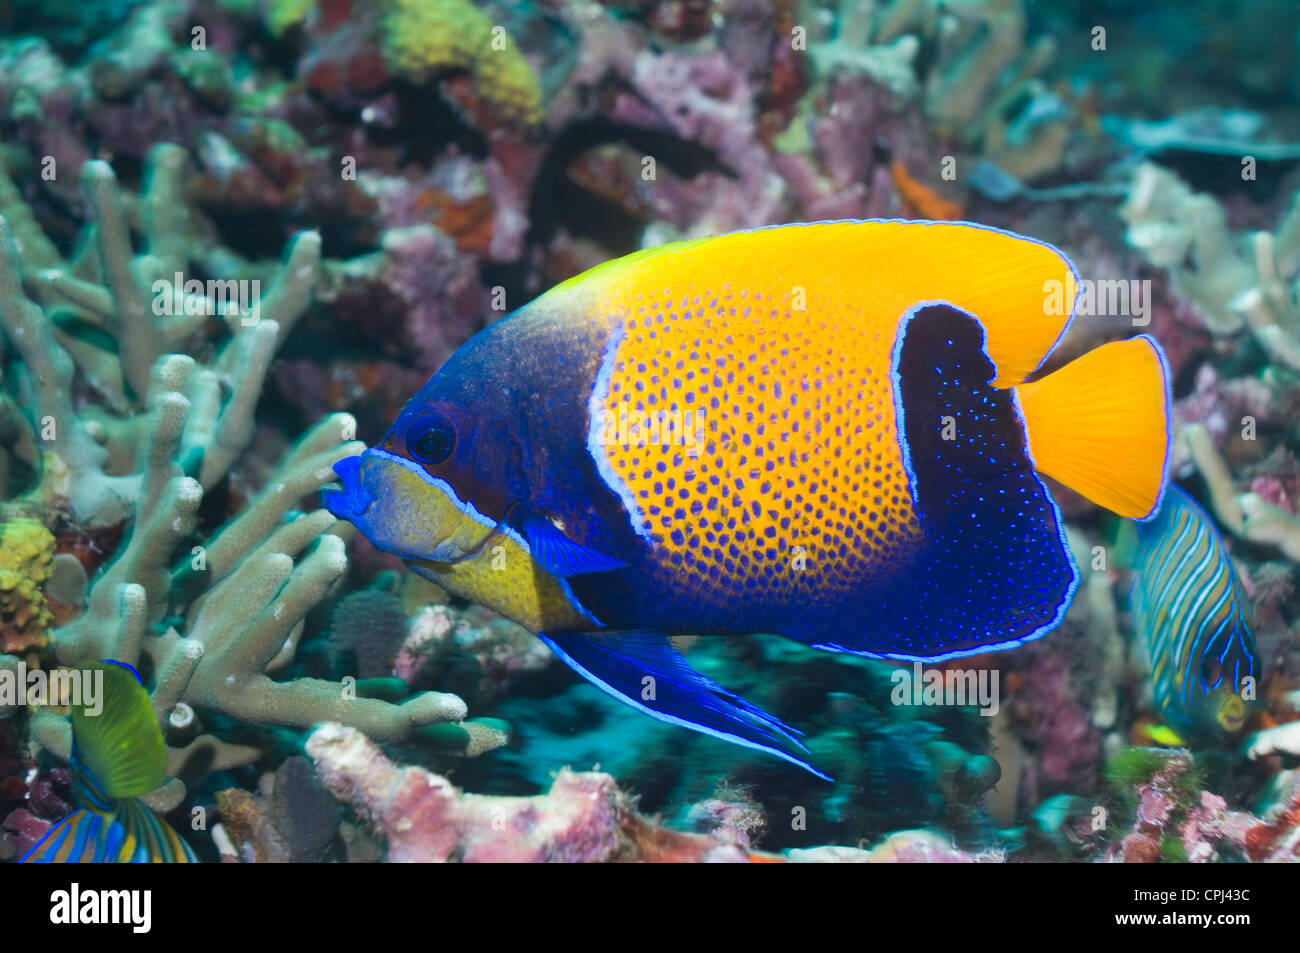 Blue-girdled angelfish (Pomacanthus navarchus). Solomon Islands. West Pacific. - Stock Image